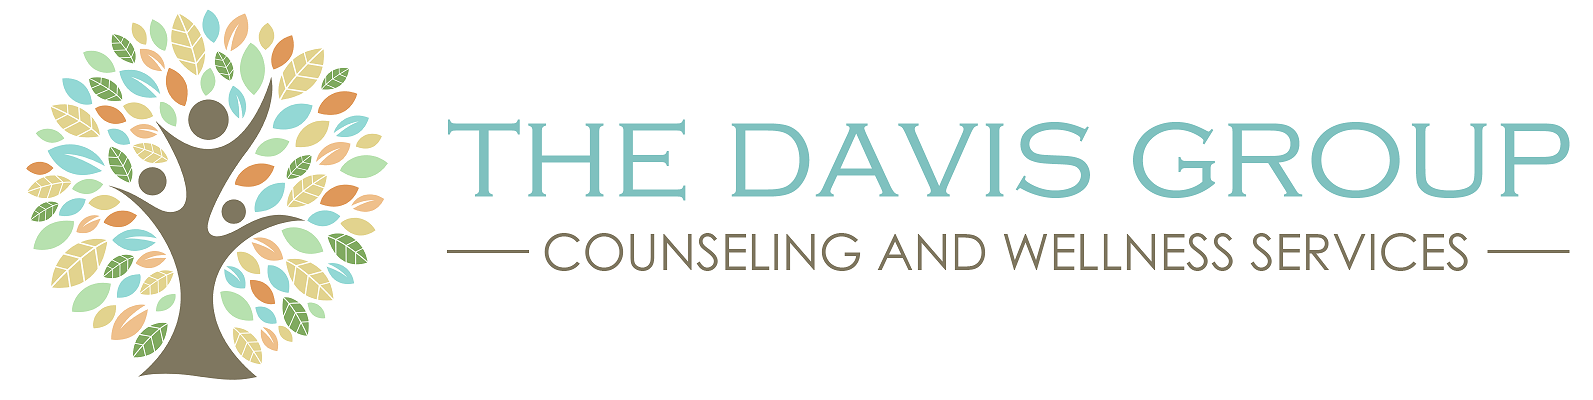 The Davis Group | Individual, Marriage & Family Counseling Throughout California